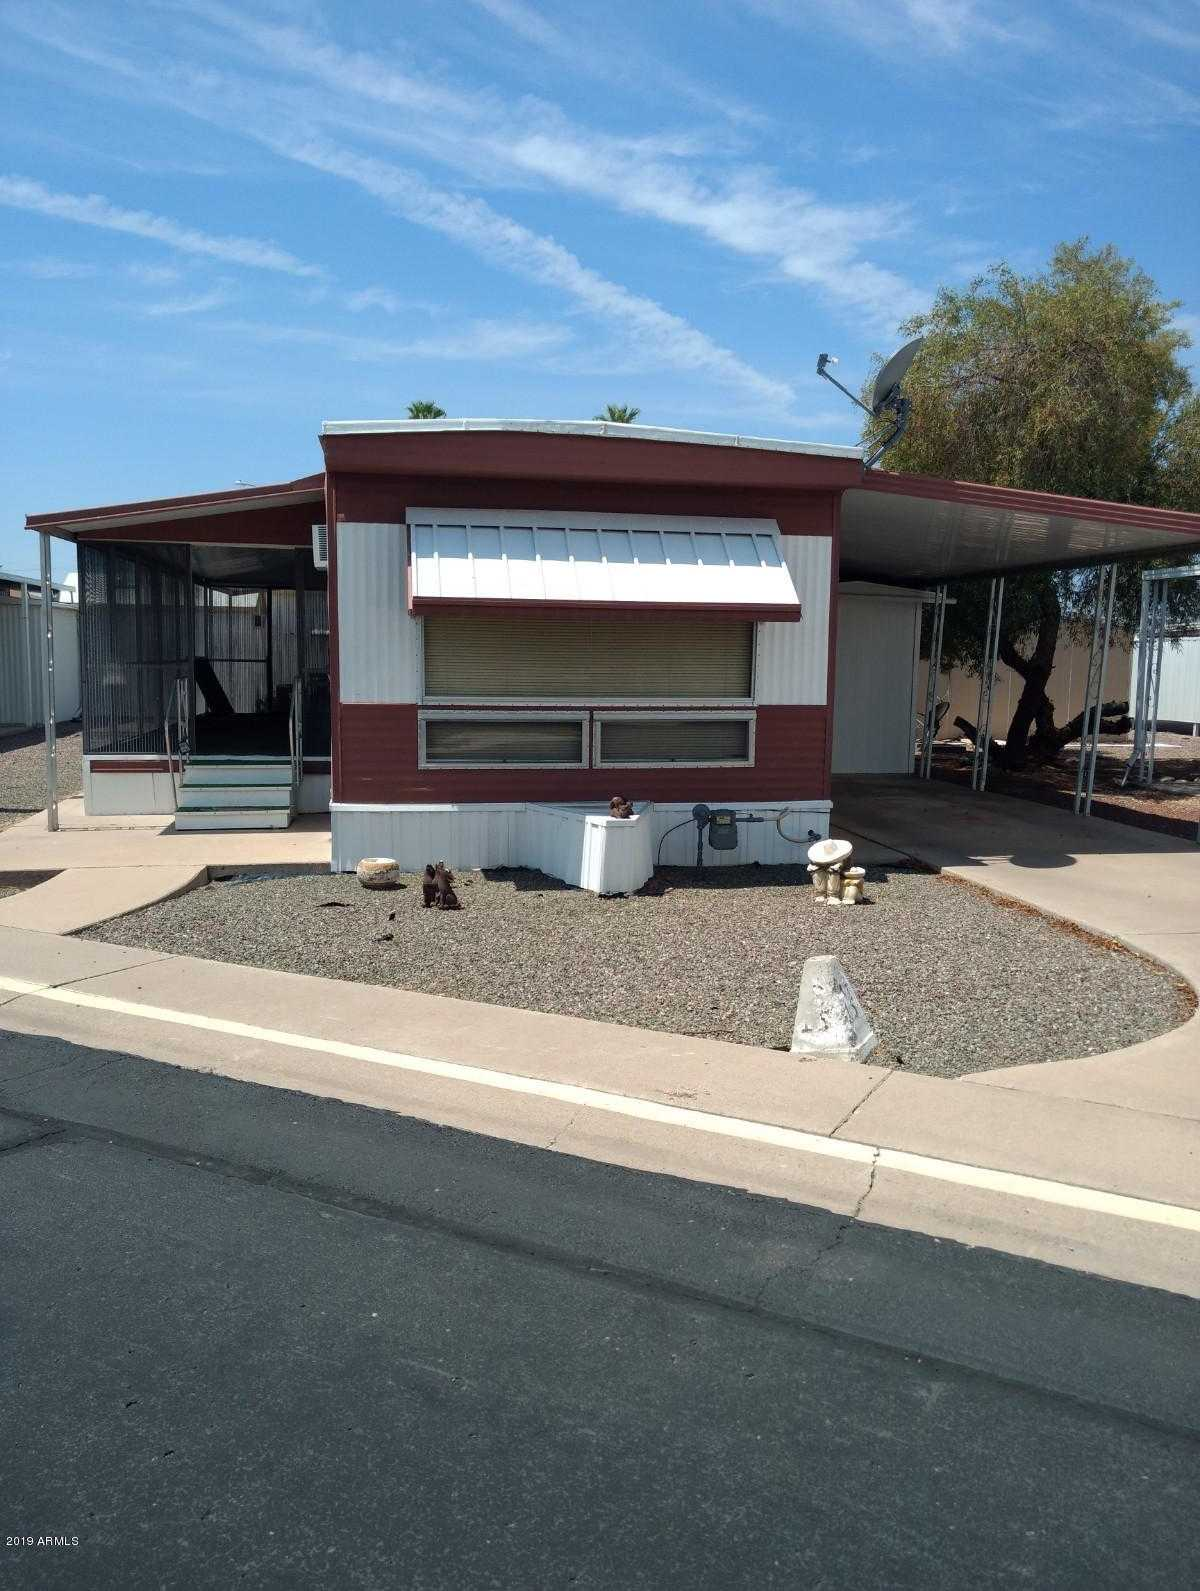 $9,400 - 1Br/1Ba -  for Sale in Trail Riders Ranch, Mesa